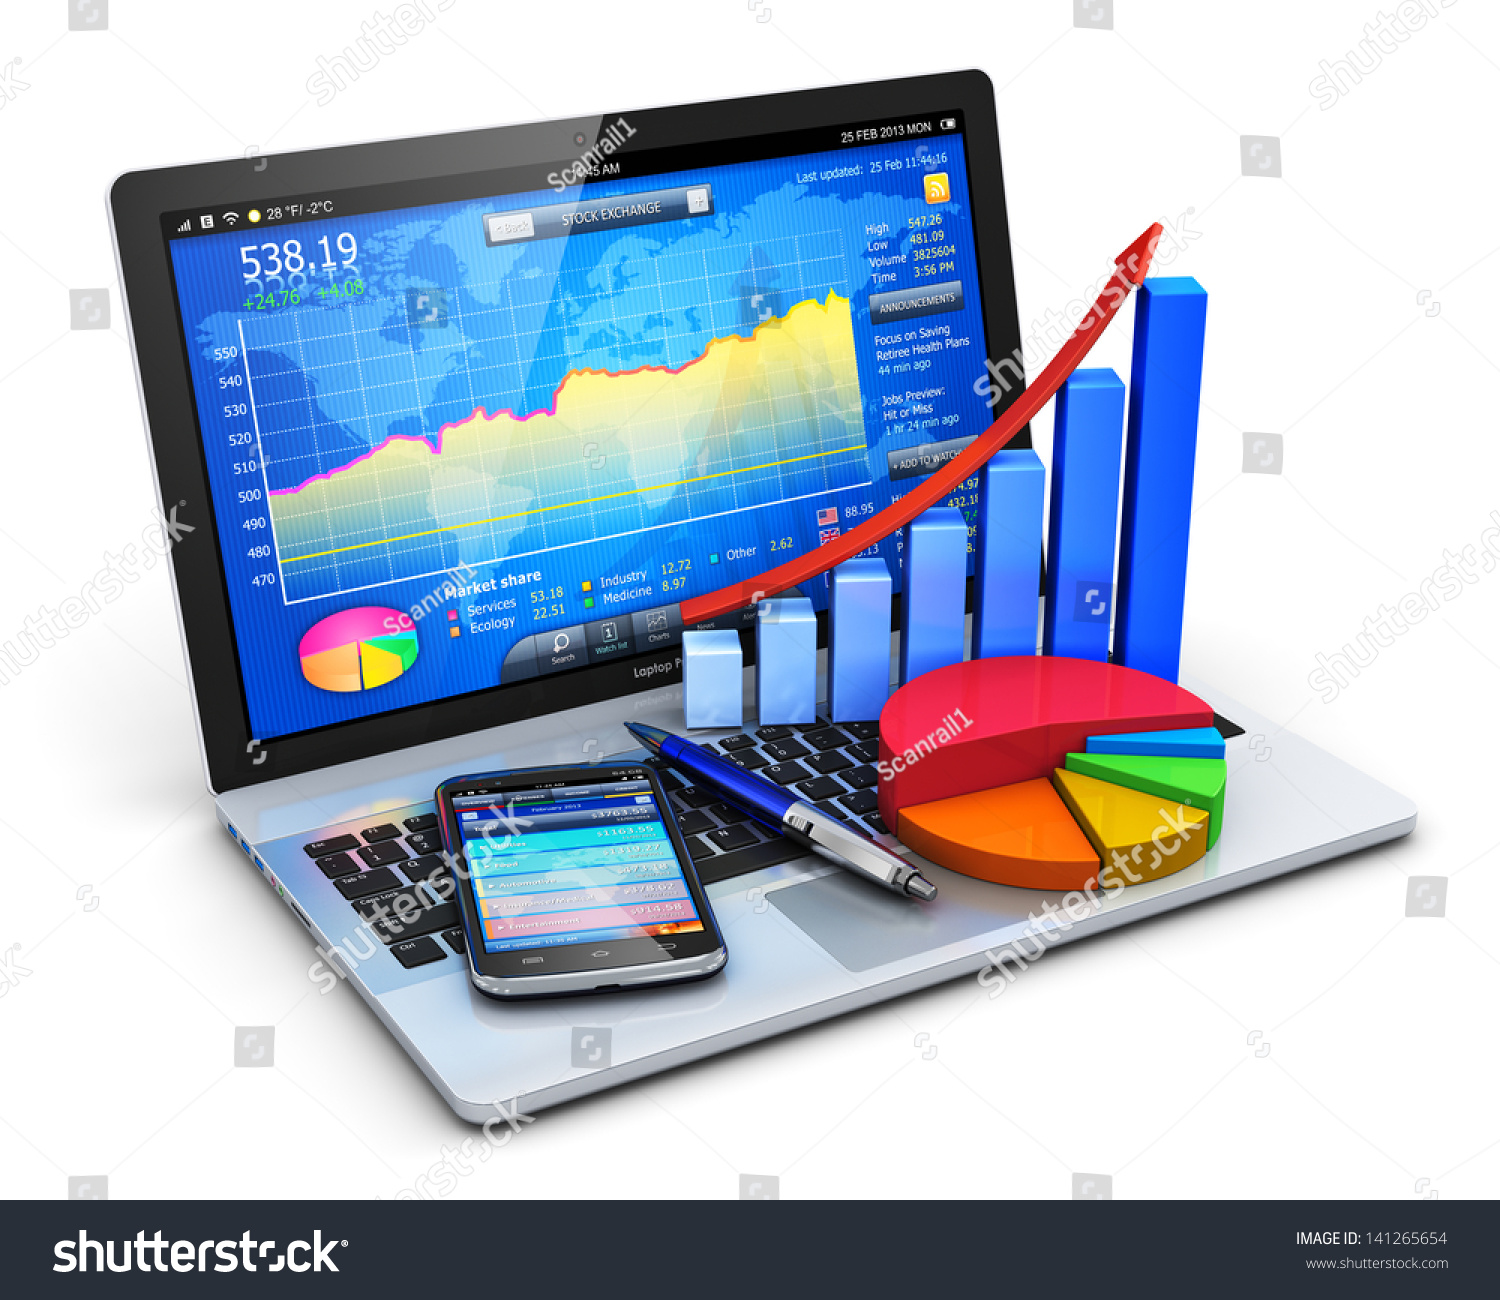 Bookkepping Andd Property Development : Mobile office stock exchange market trading